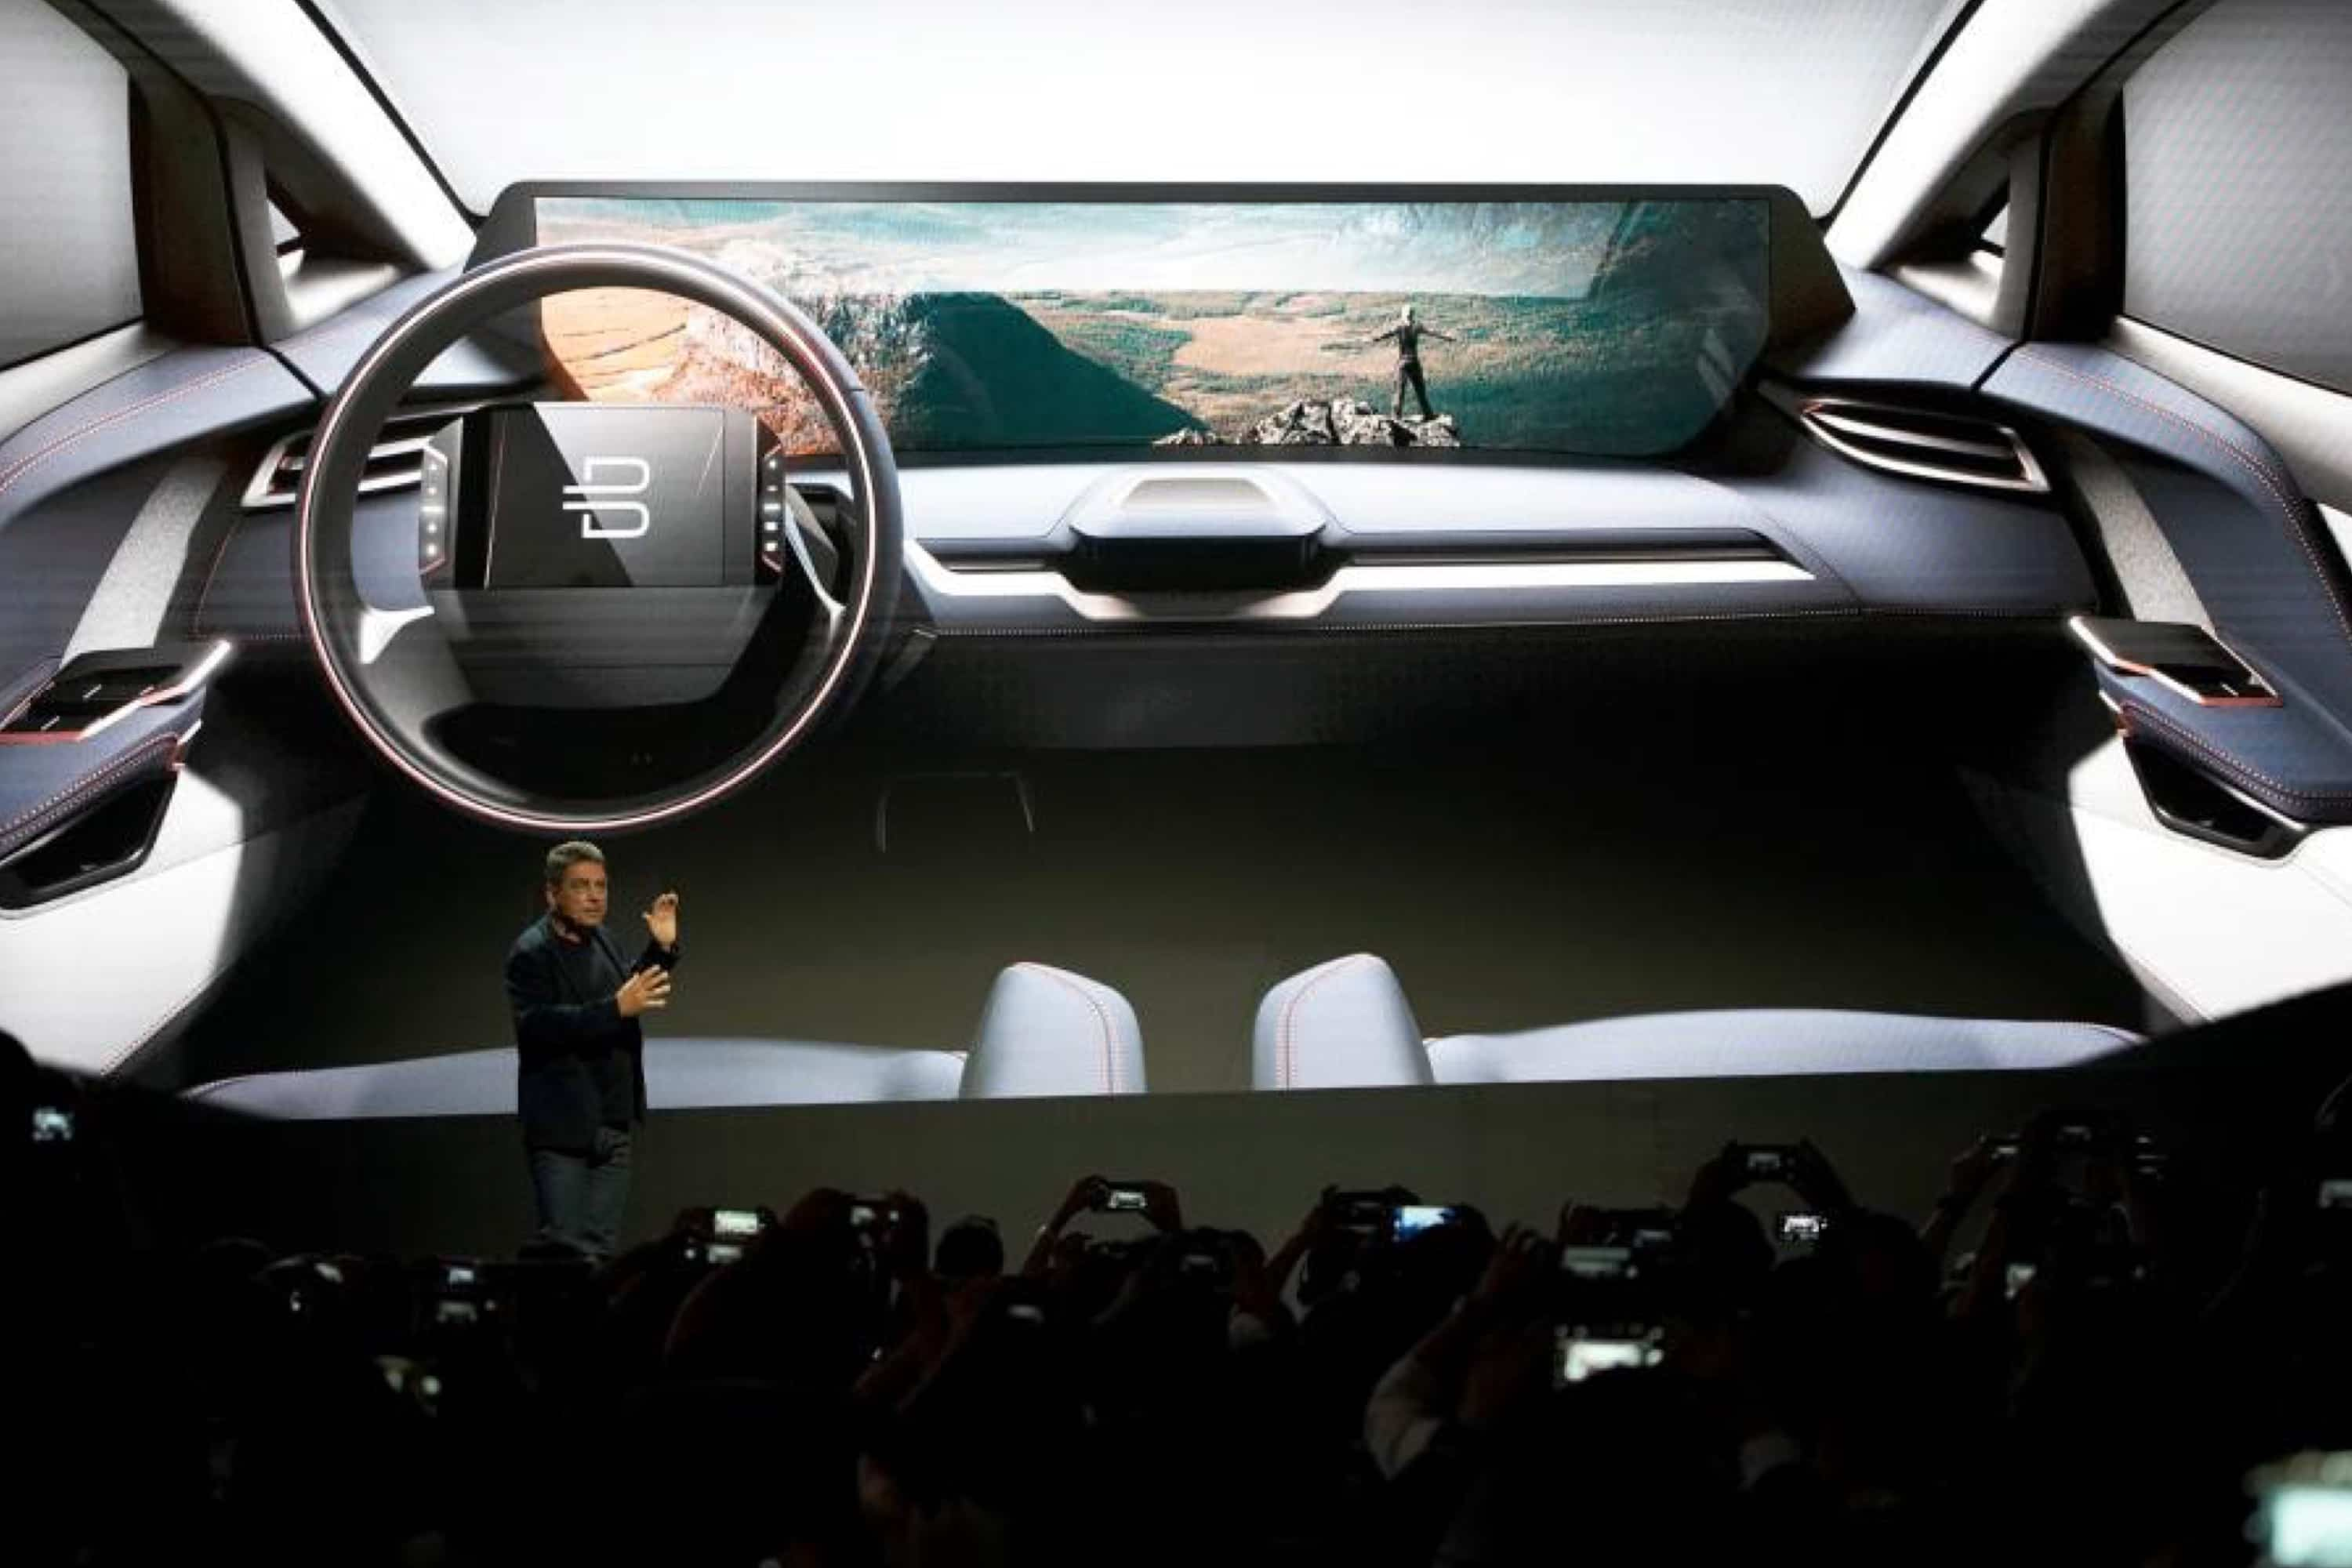 apple-working-with-tsmc-on-self-driving-chip-technology-20201209-2